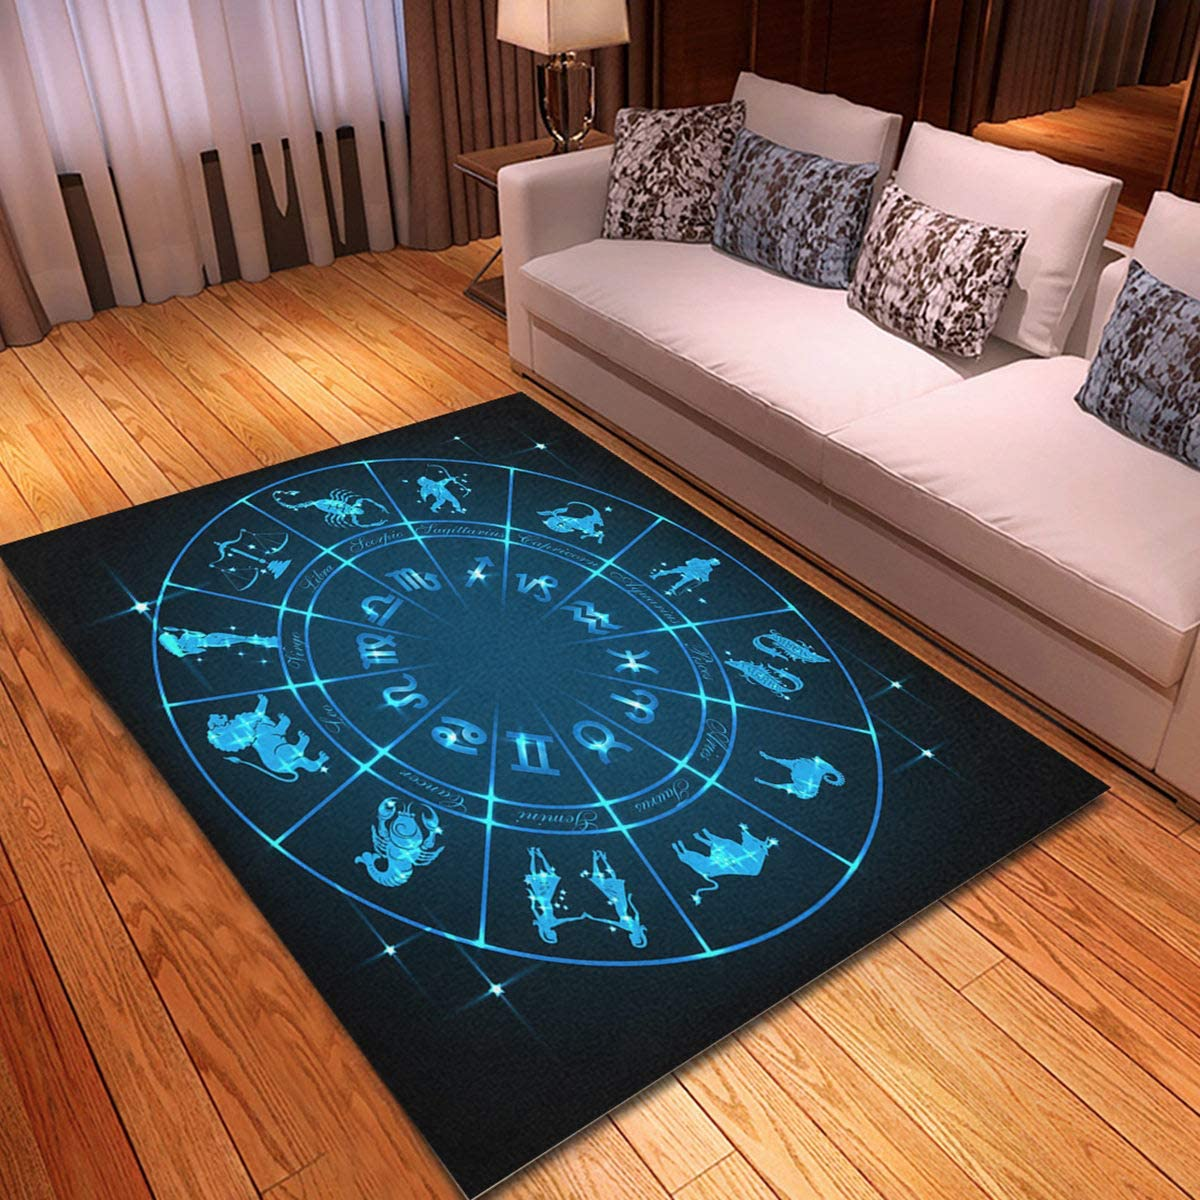 rouihot Non-Slip Area Rug 4'x 6' Blue S Now Max 61% OFF on sale Fortune Horoscope Circle